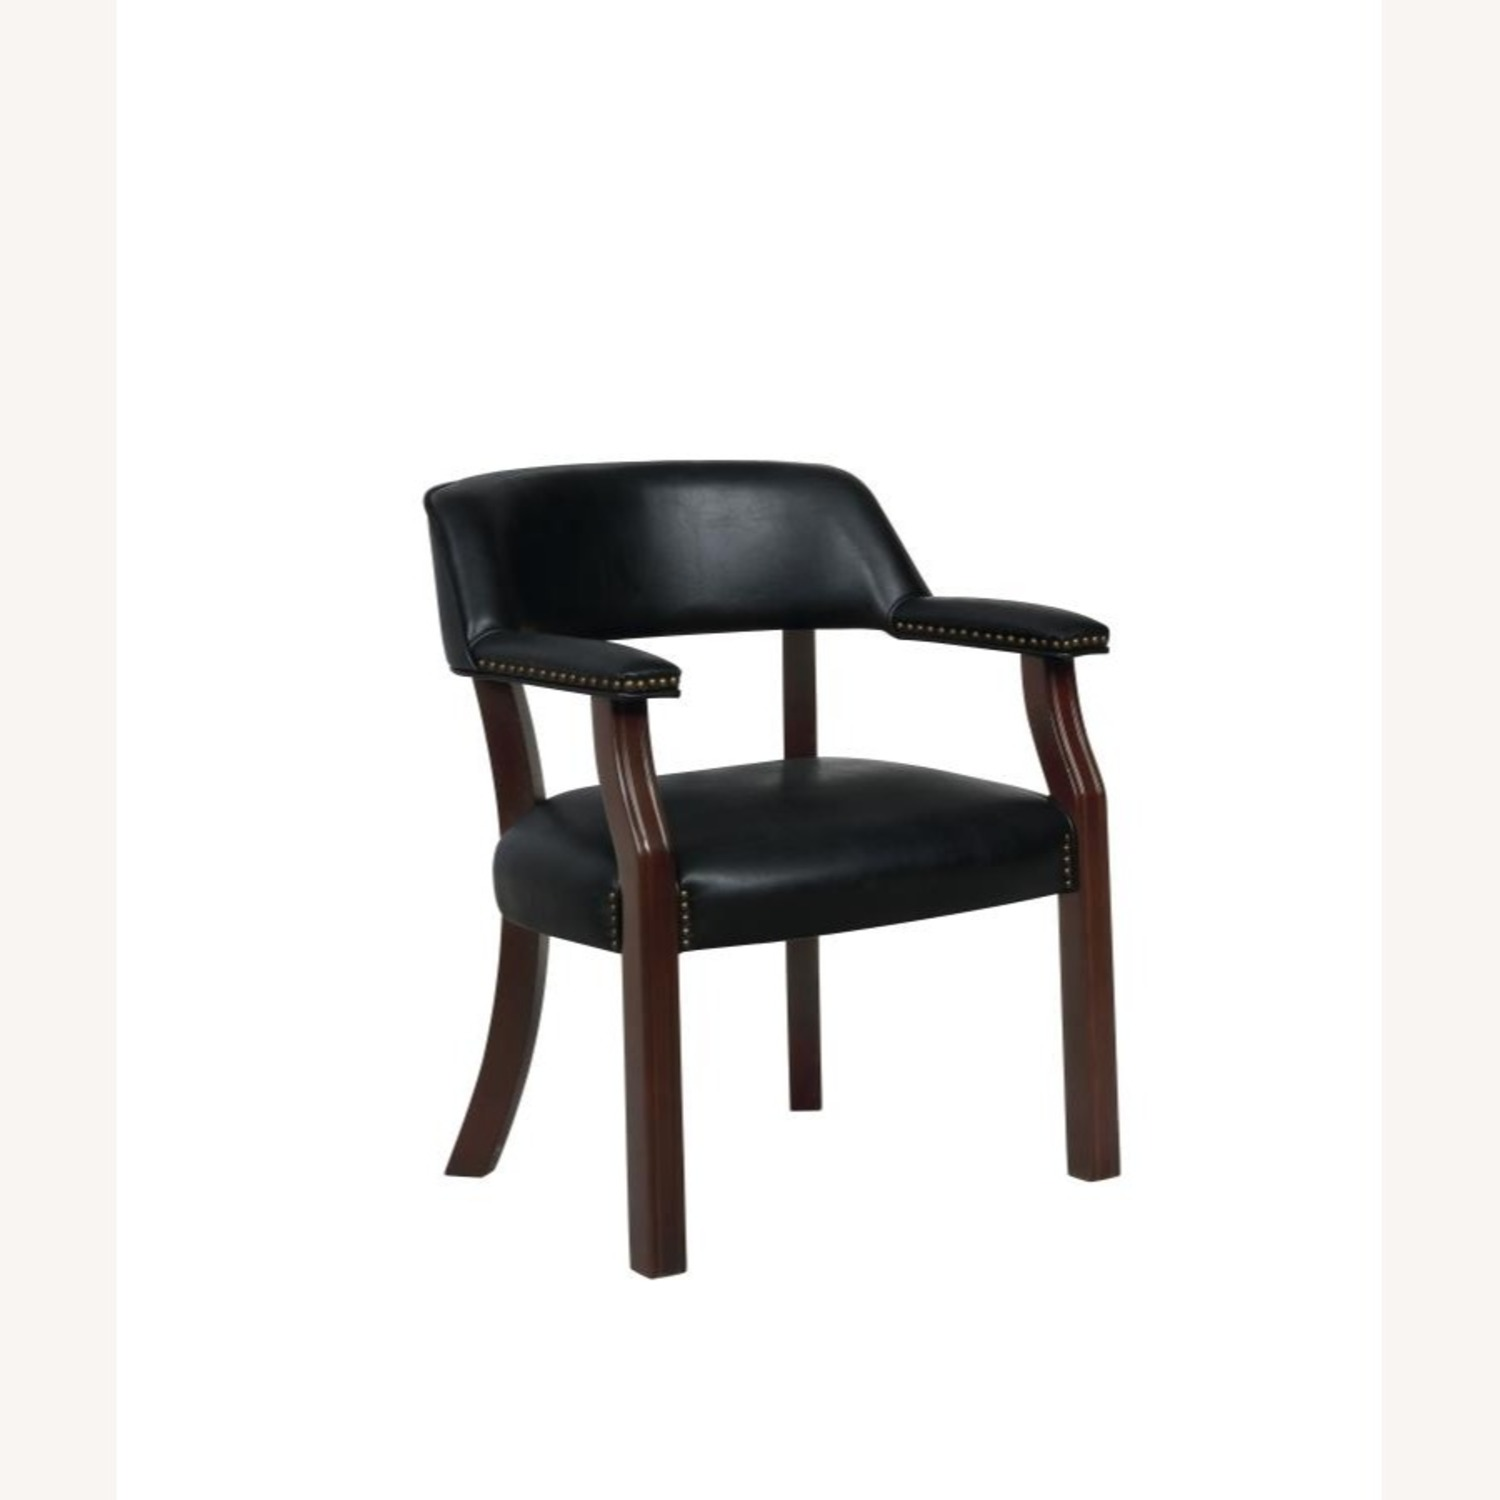 Guest Chair In Black Leatherette - image-0